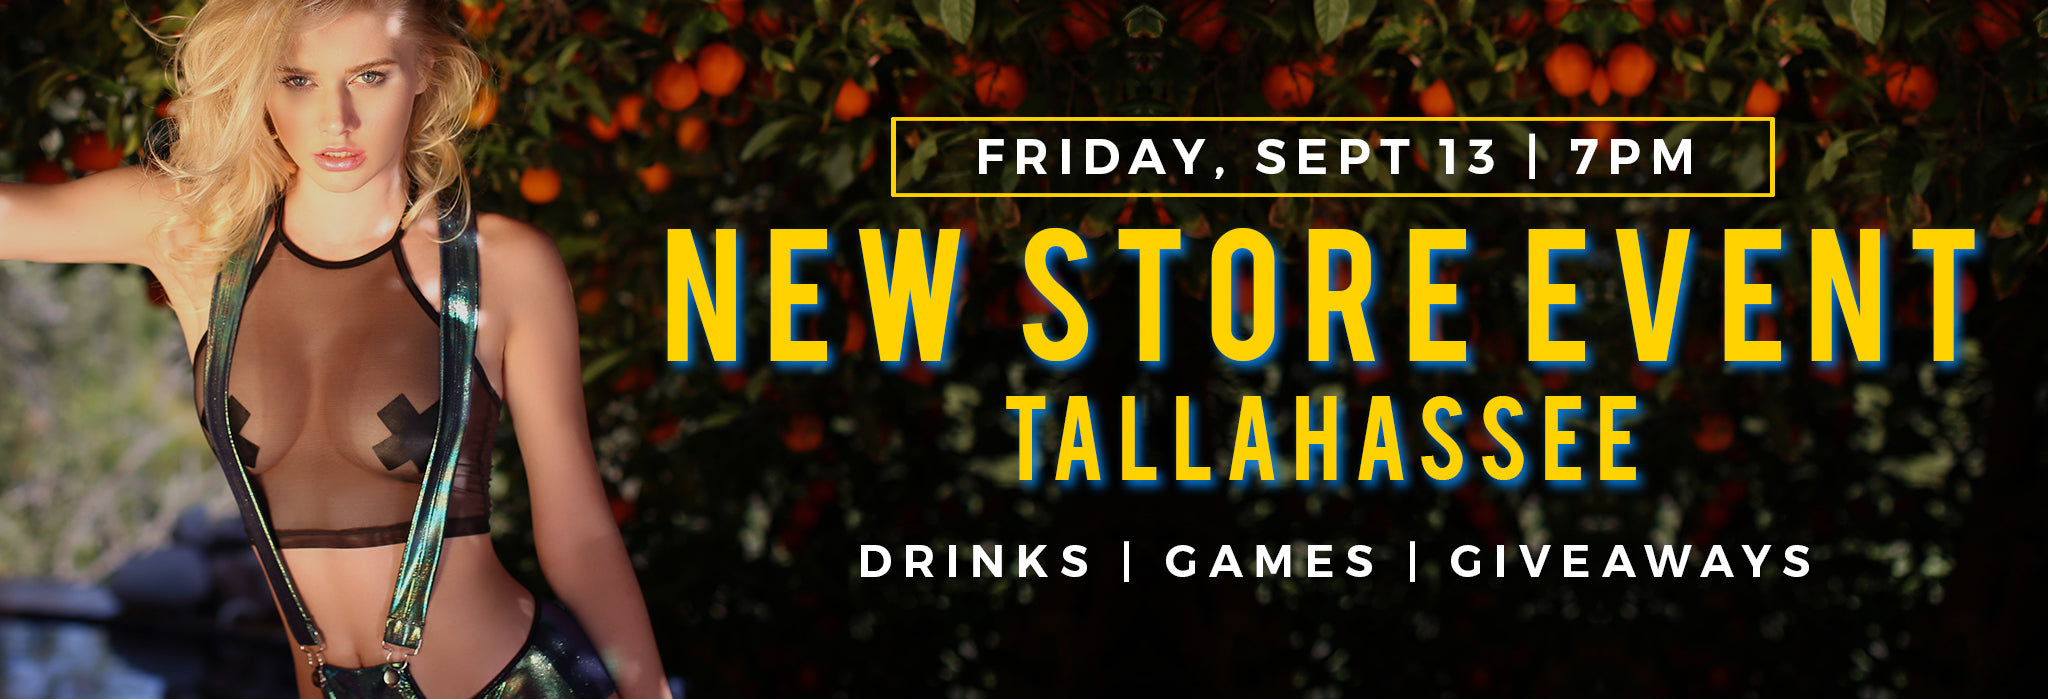 HUSTLER Hollywood Tallahassee New Store Event